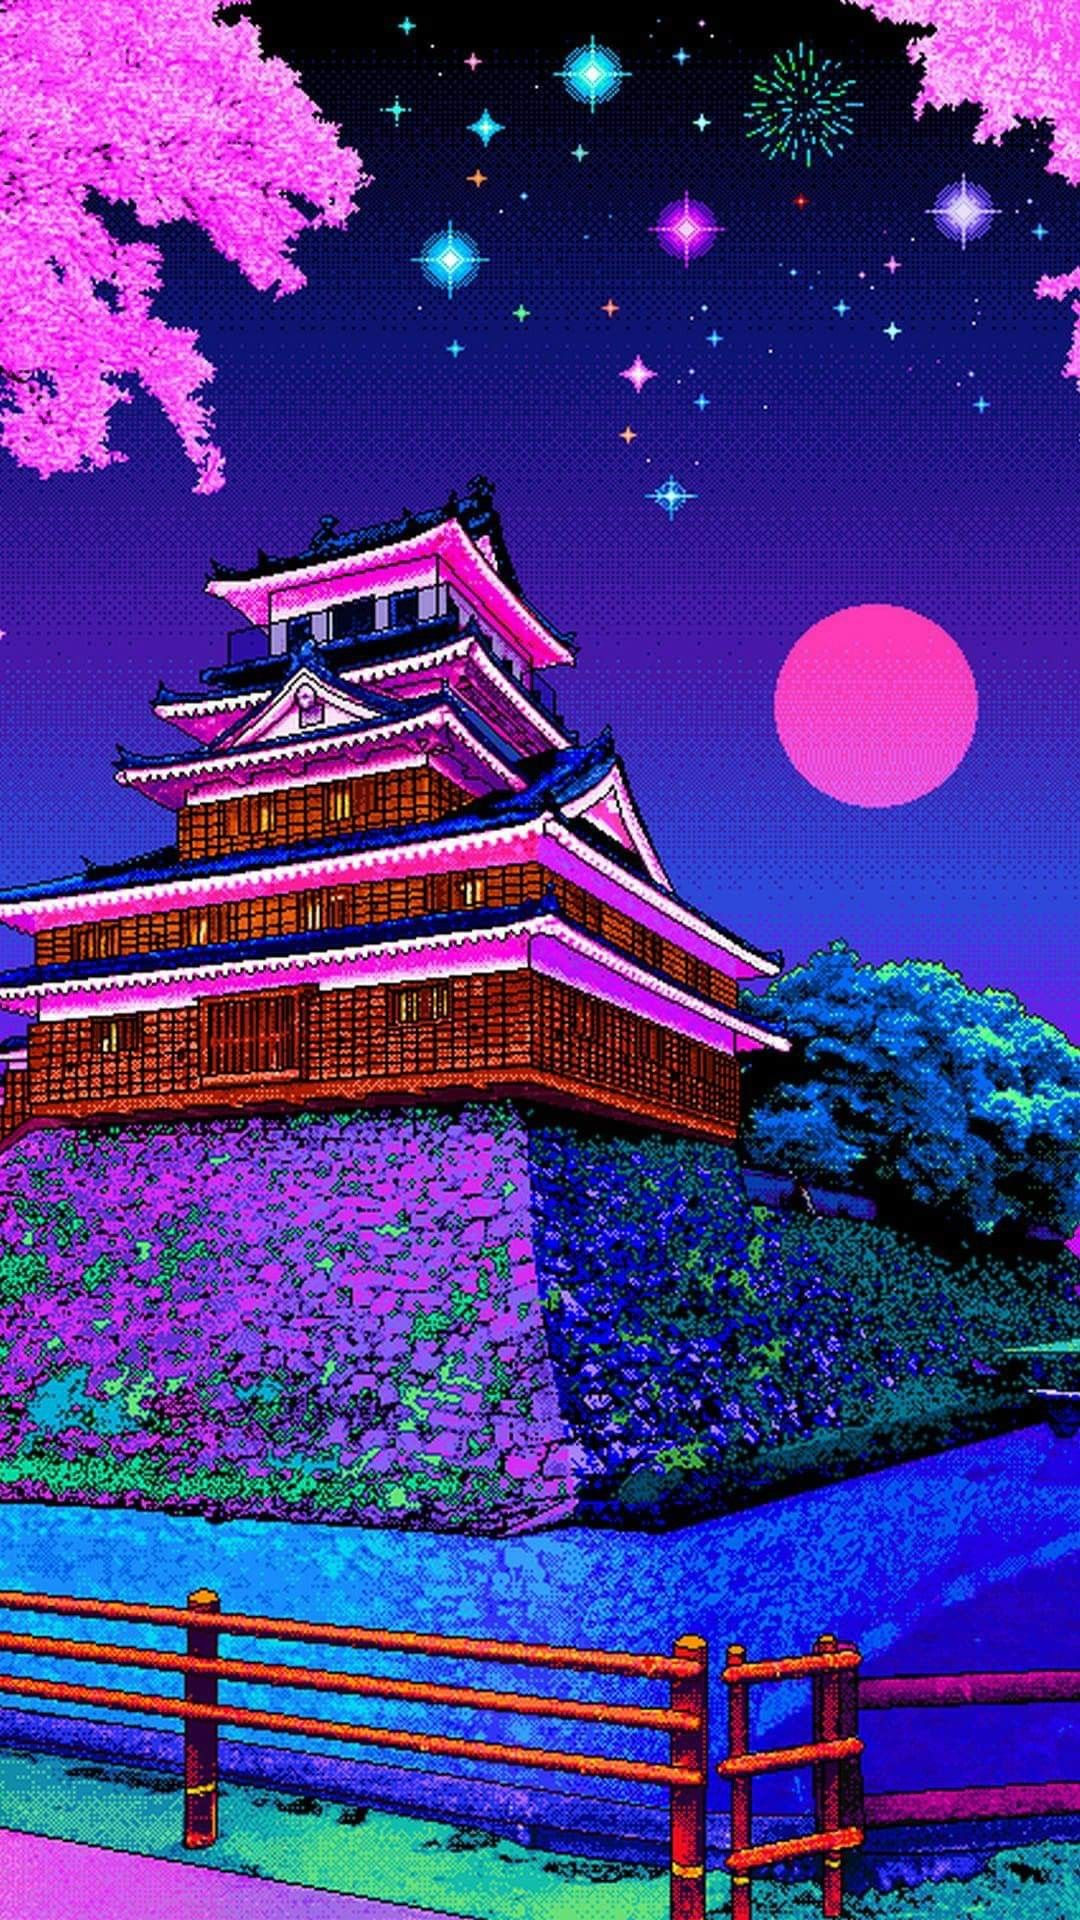 Night in Japan Vaporwave wallpaper, Vaporwave art, Pixel art